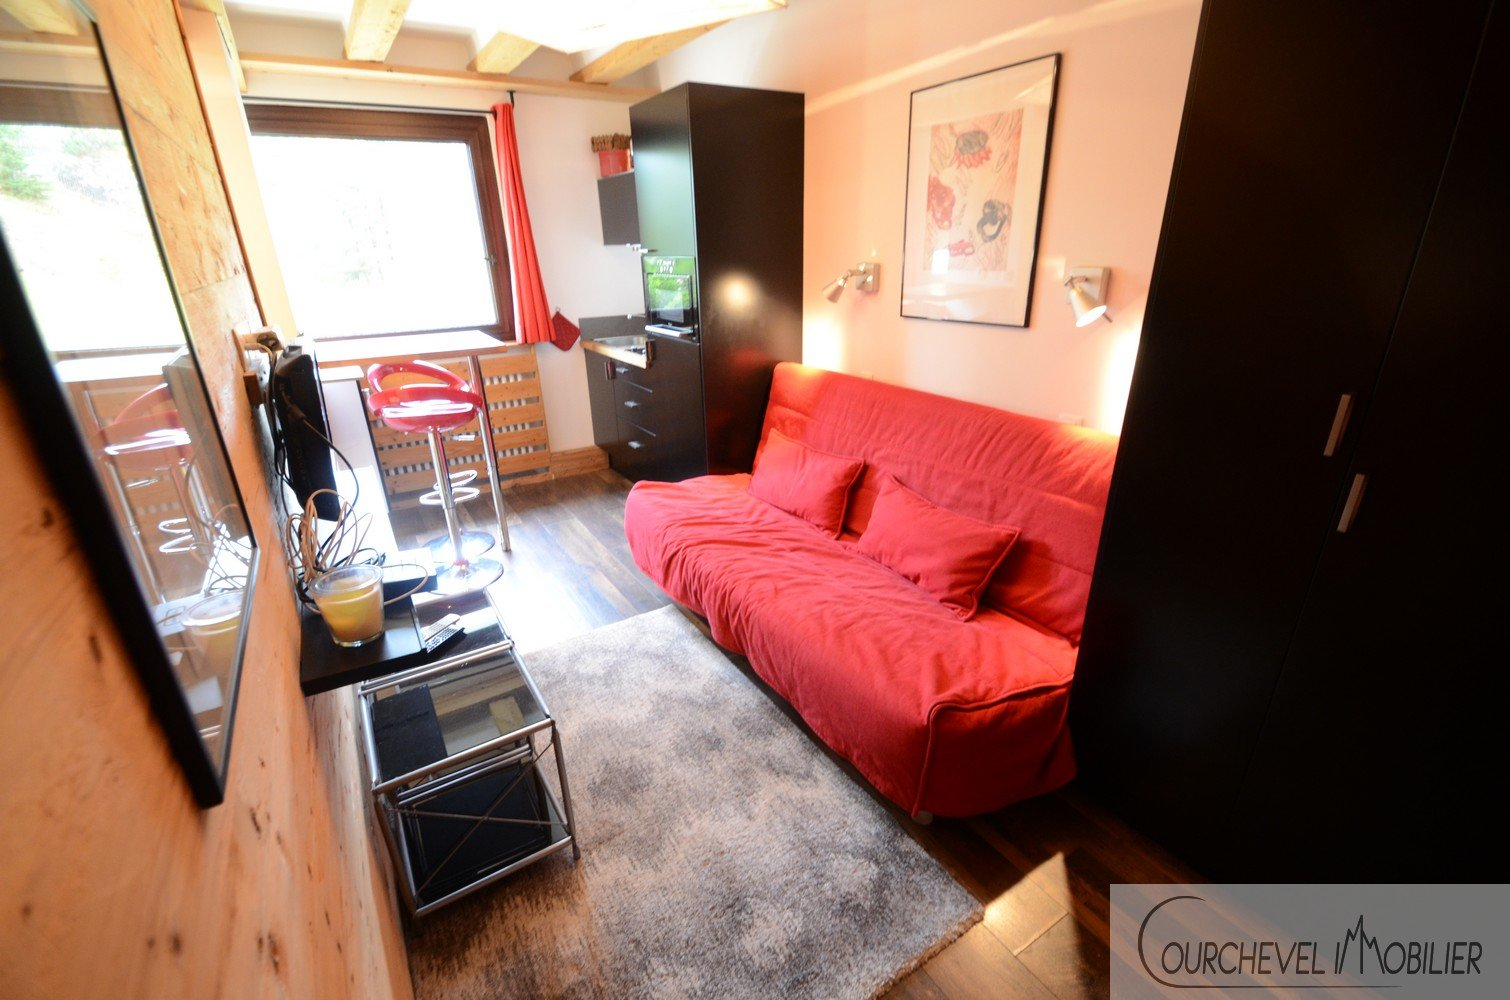 STUDIO APARTMENT - COURCHEVEL 1650